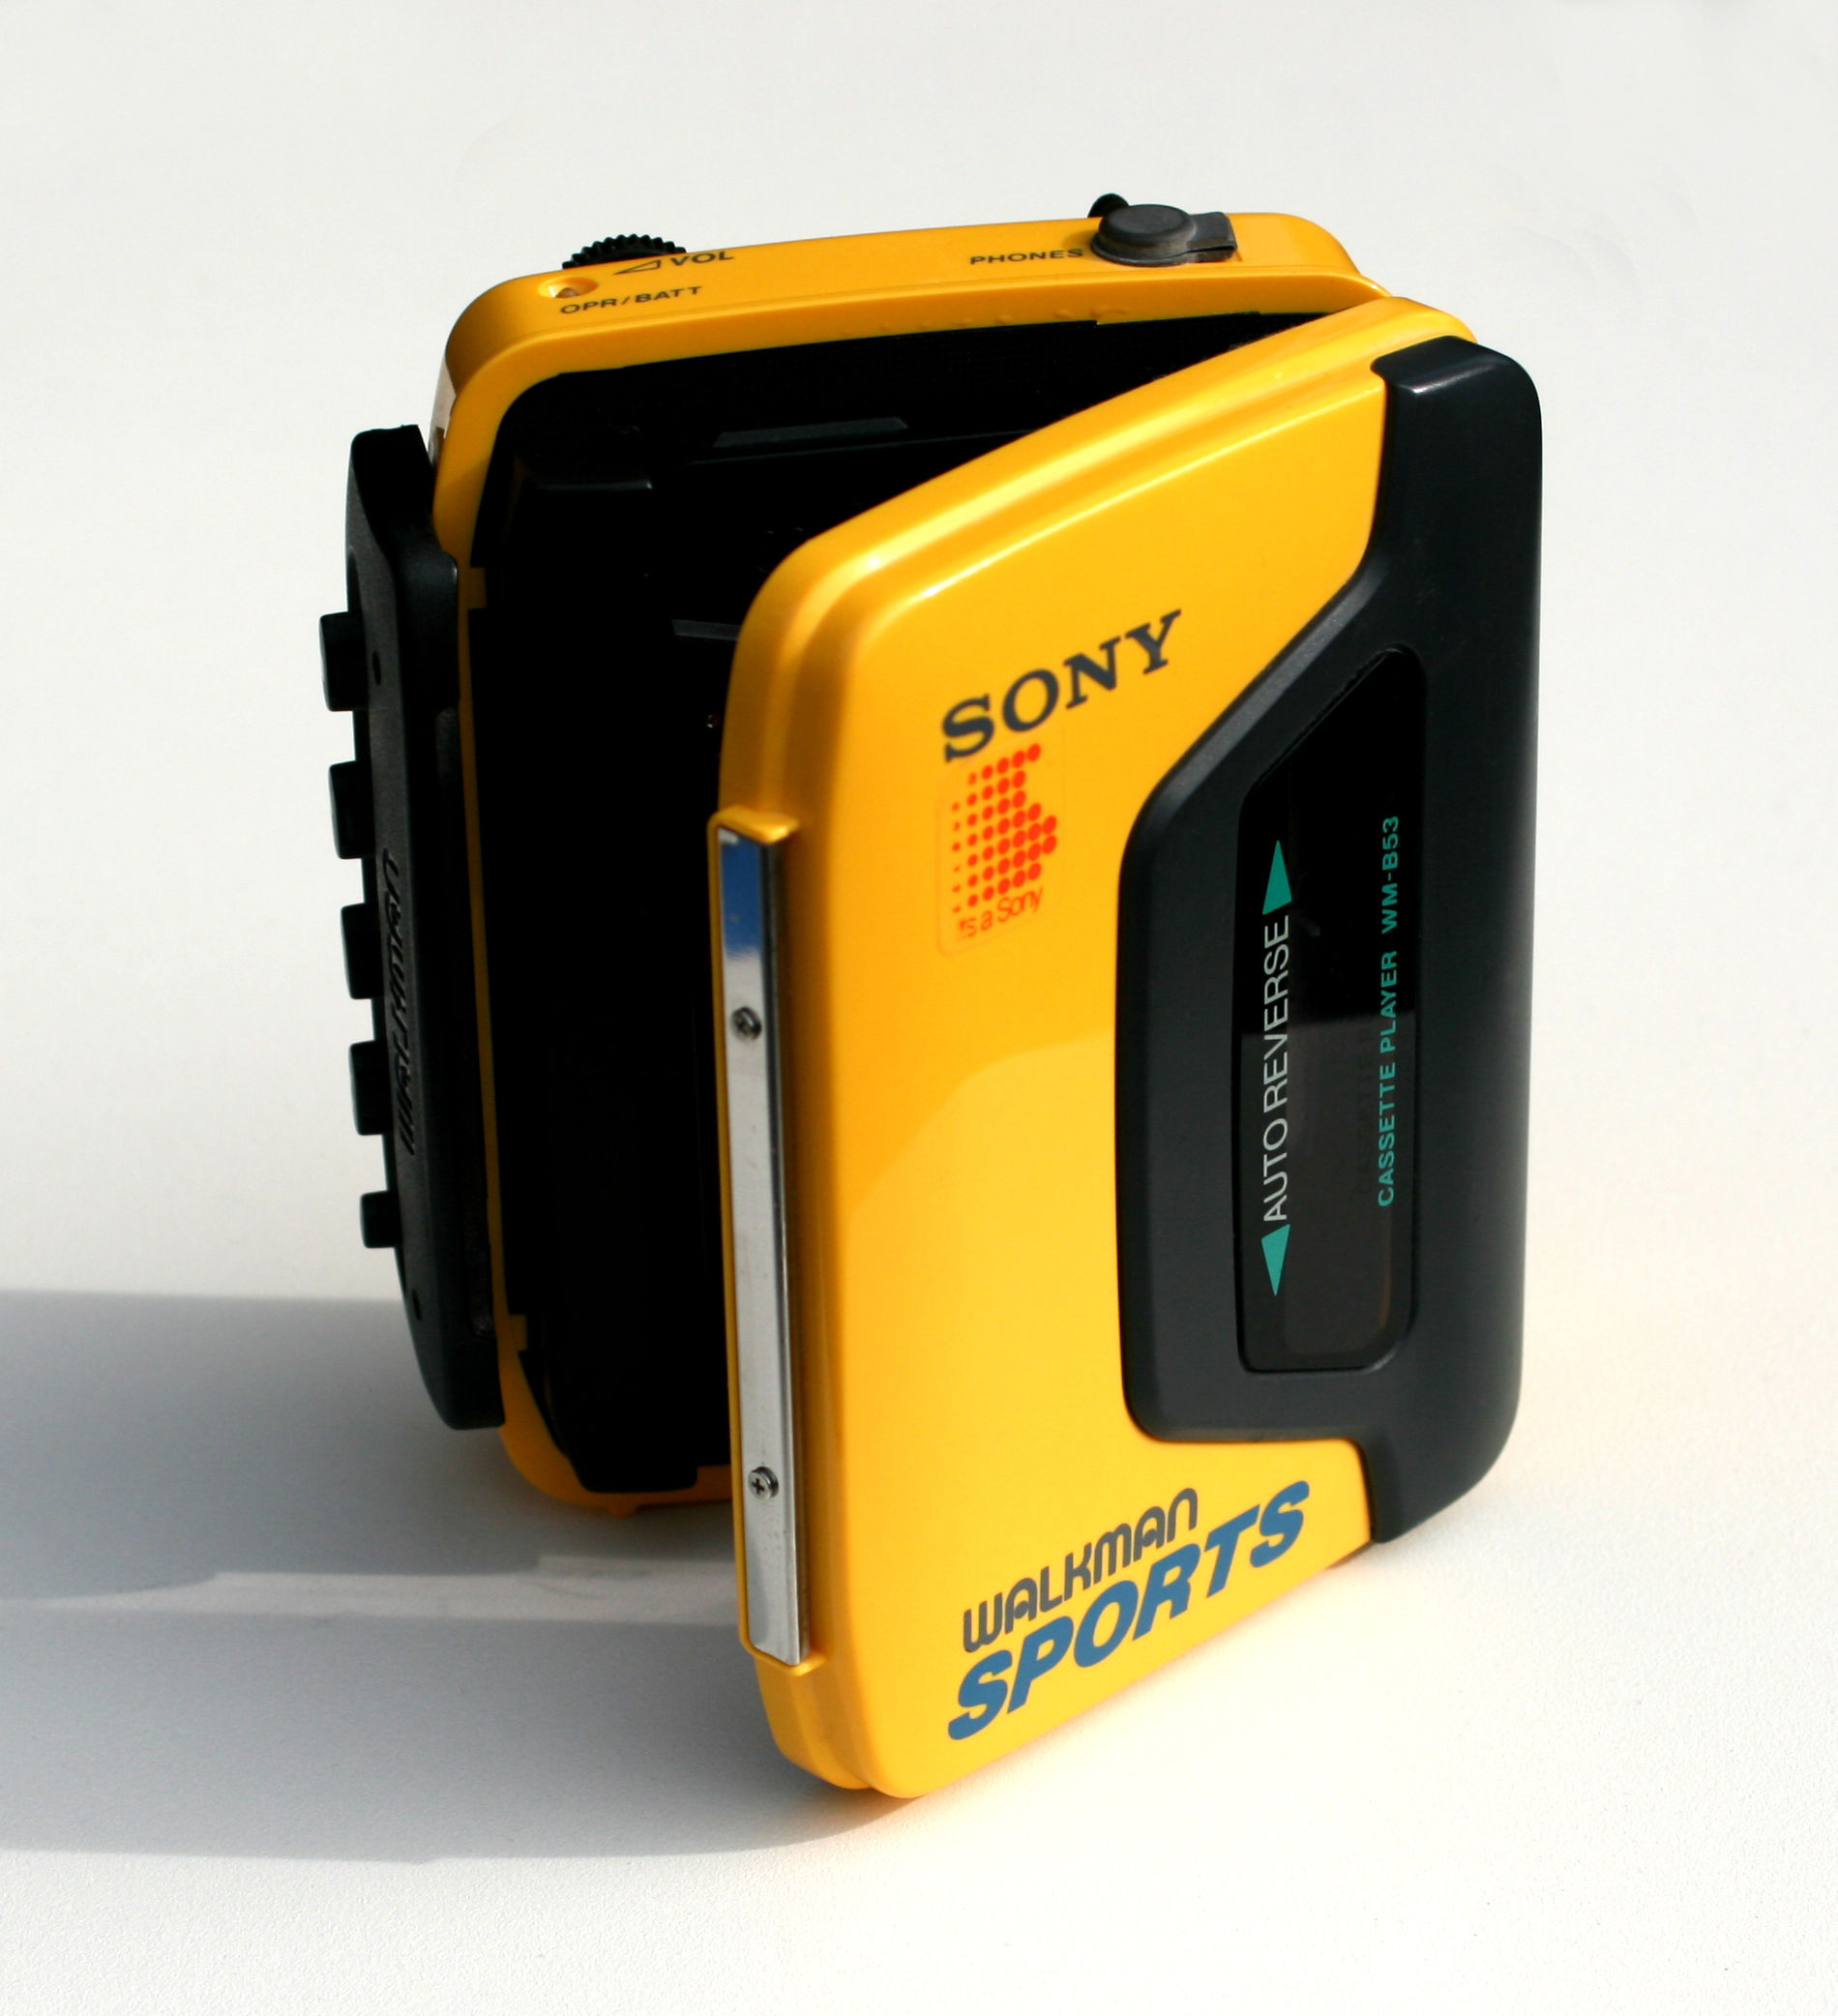 http://upload.wikimedia.org/wikipedia/commons/e/ed/Sony_Walkman02.jpg